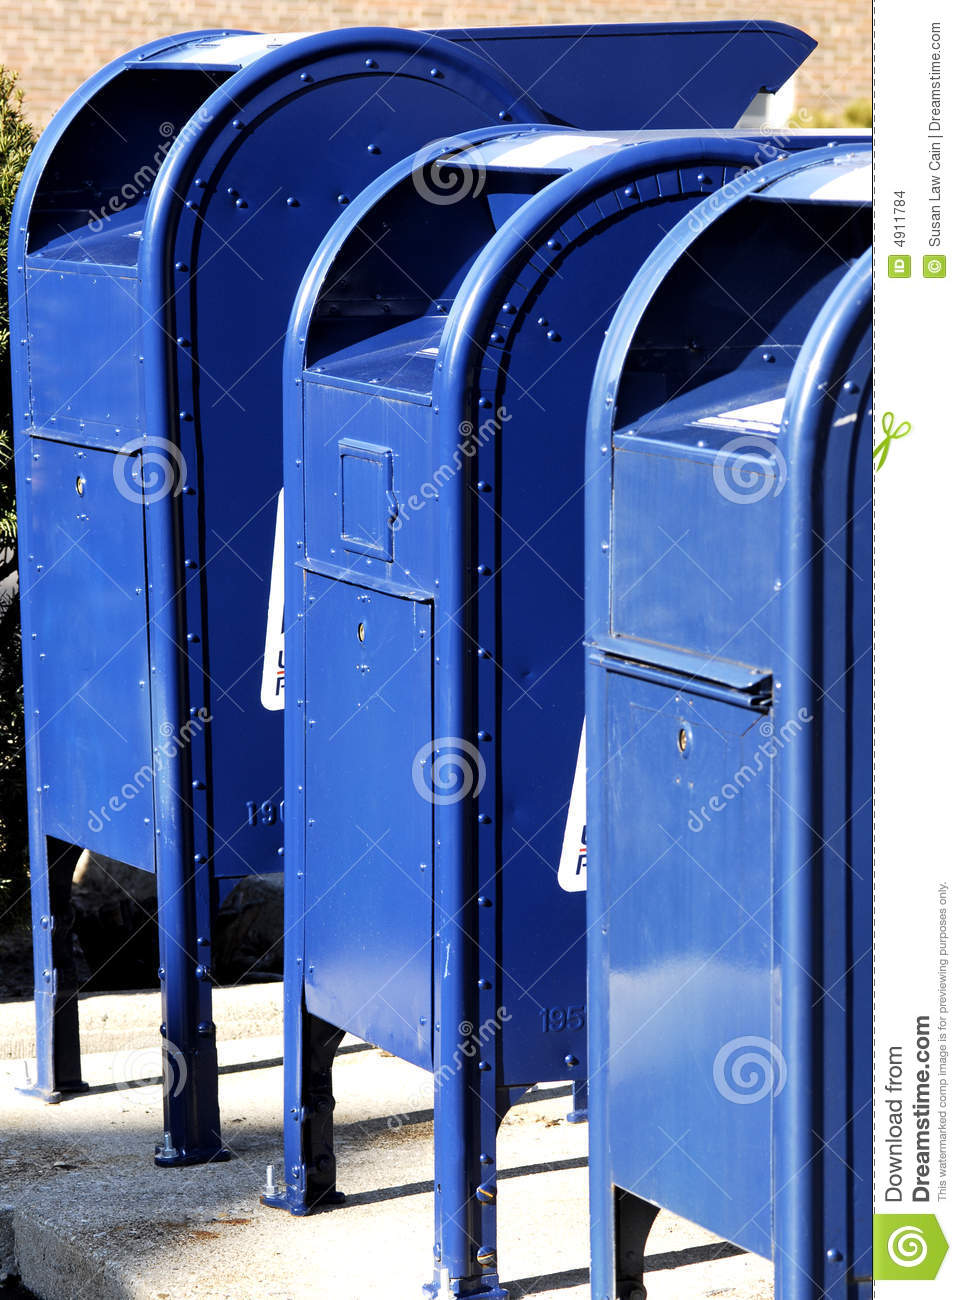 Postal Boxes in A Row